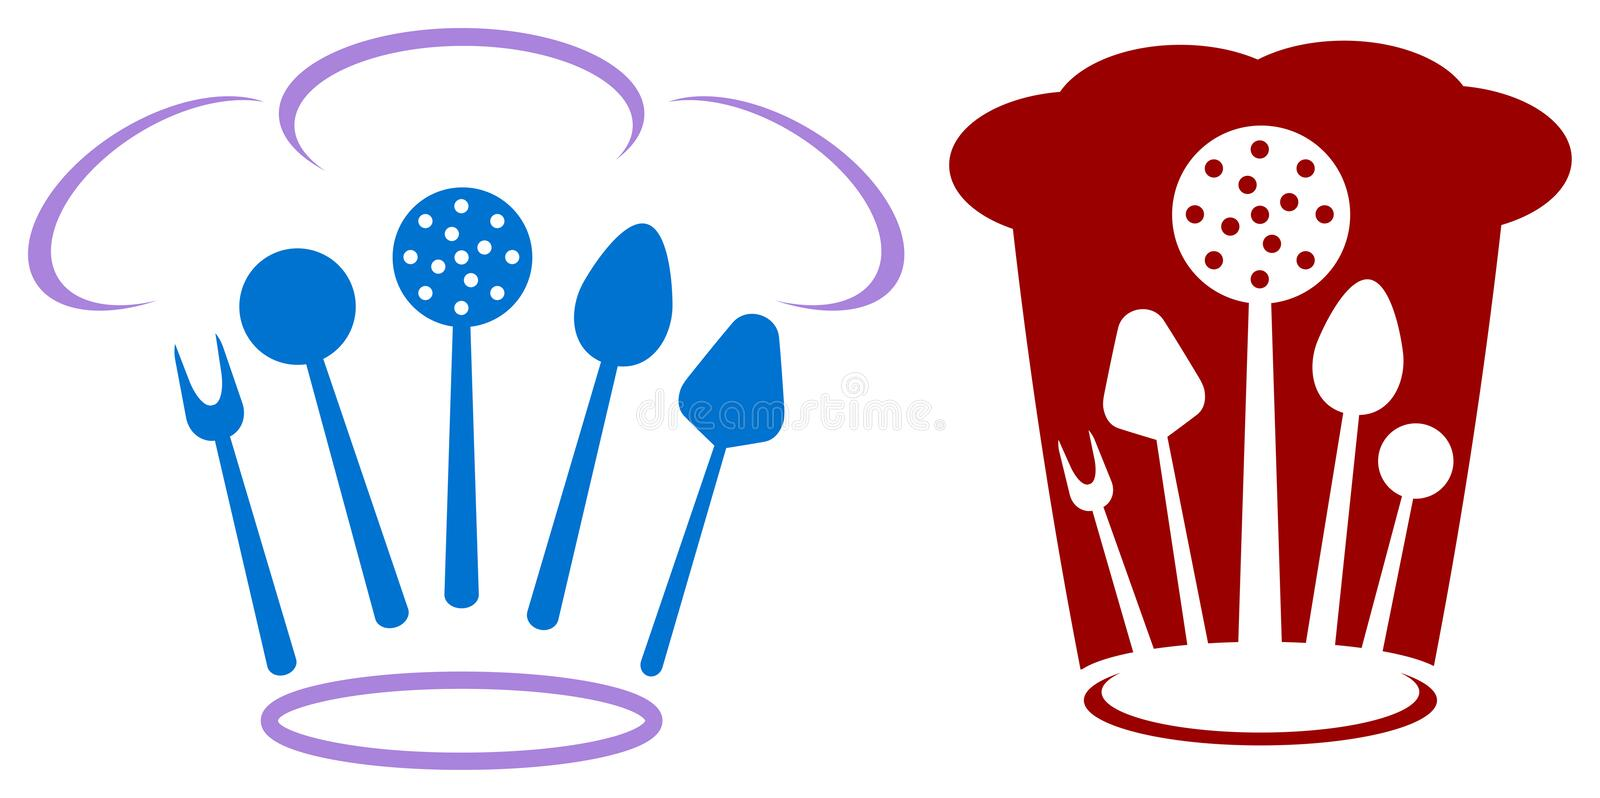 Logo de chef illustration stock